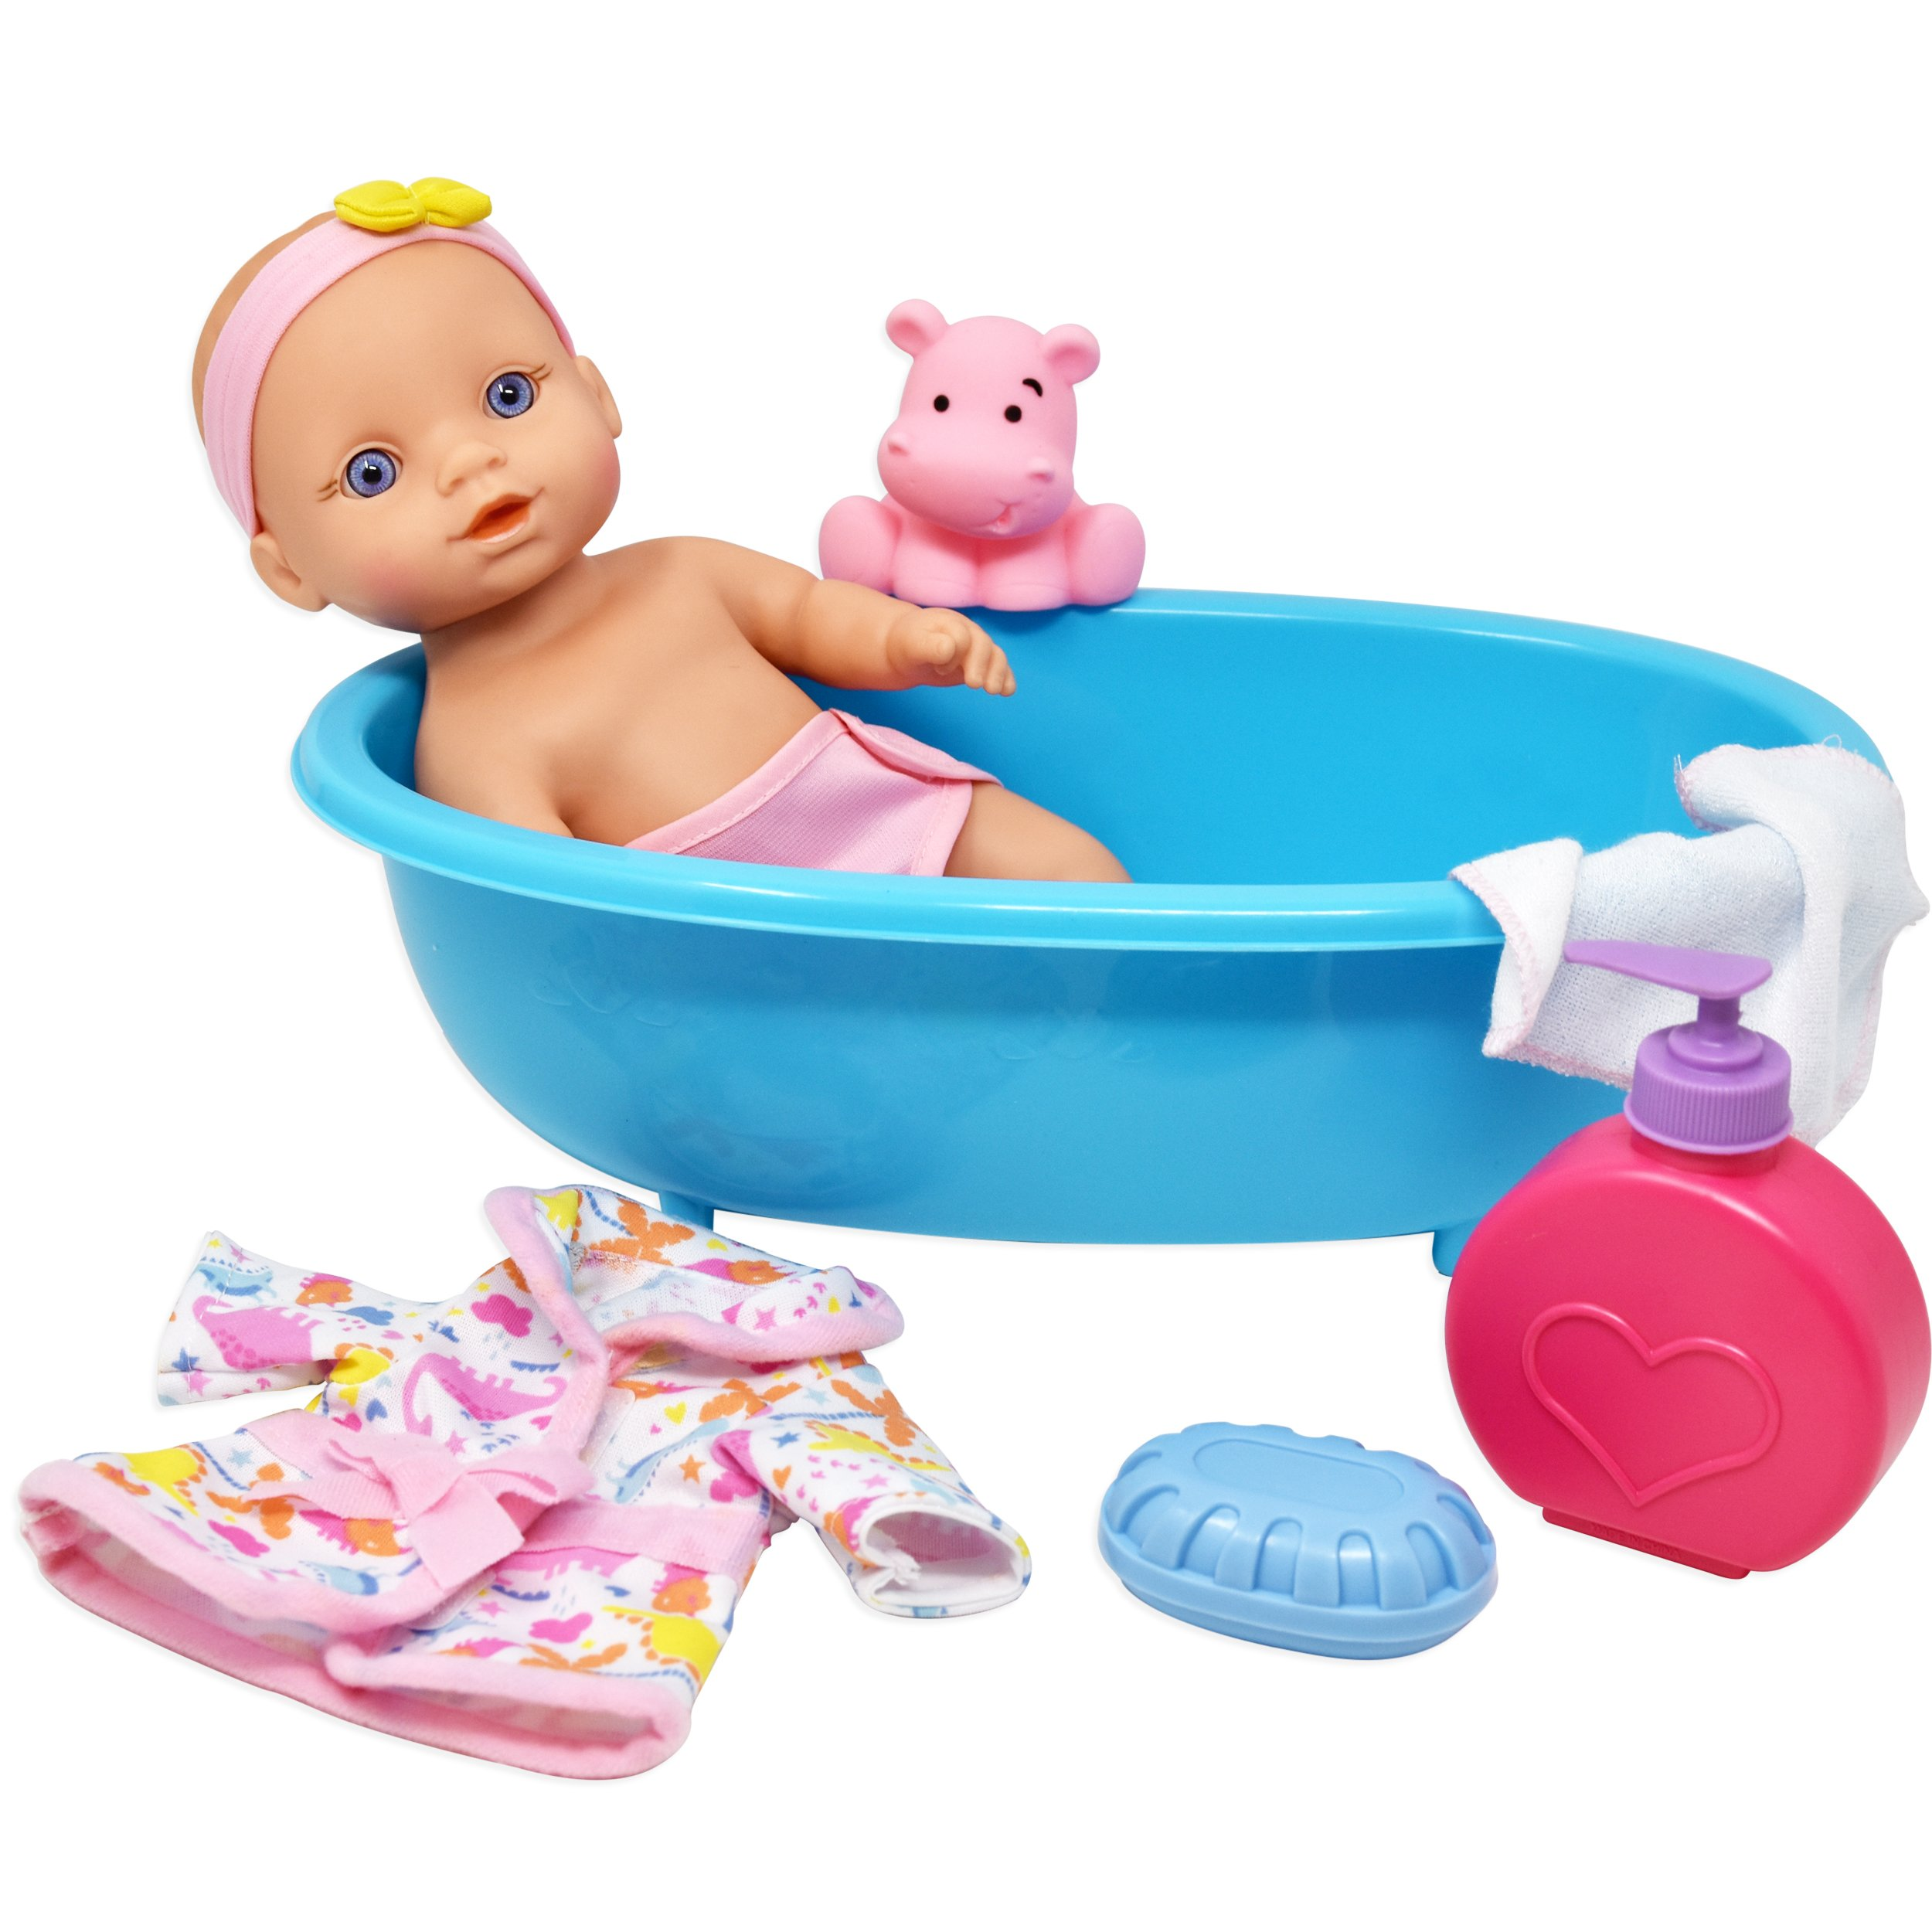 Best dolls for bath | Amazon.com